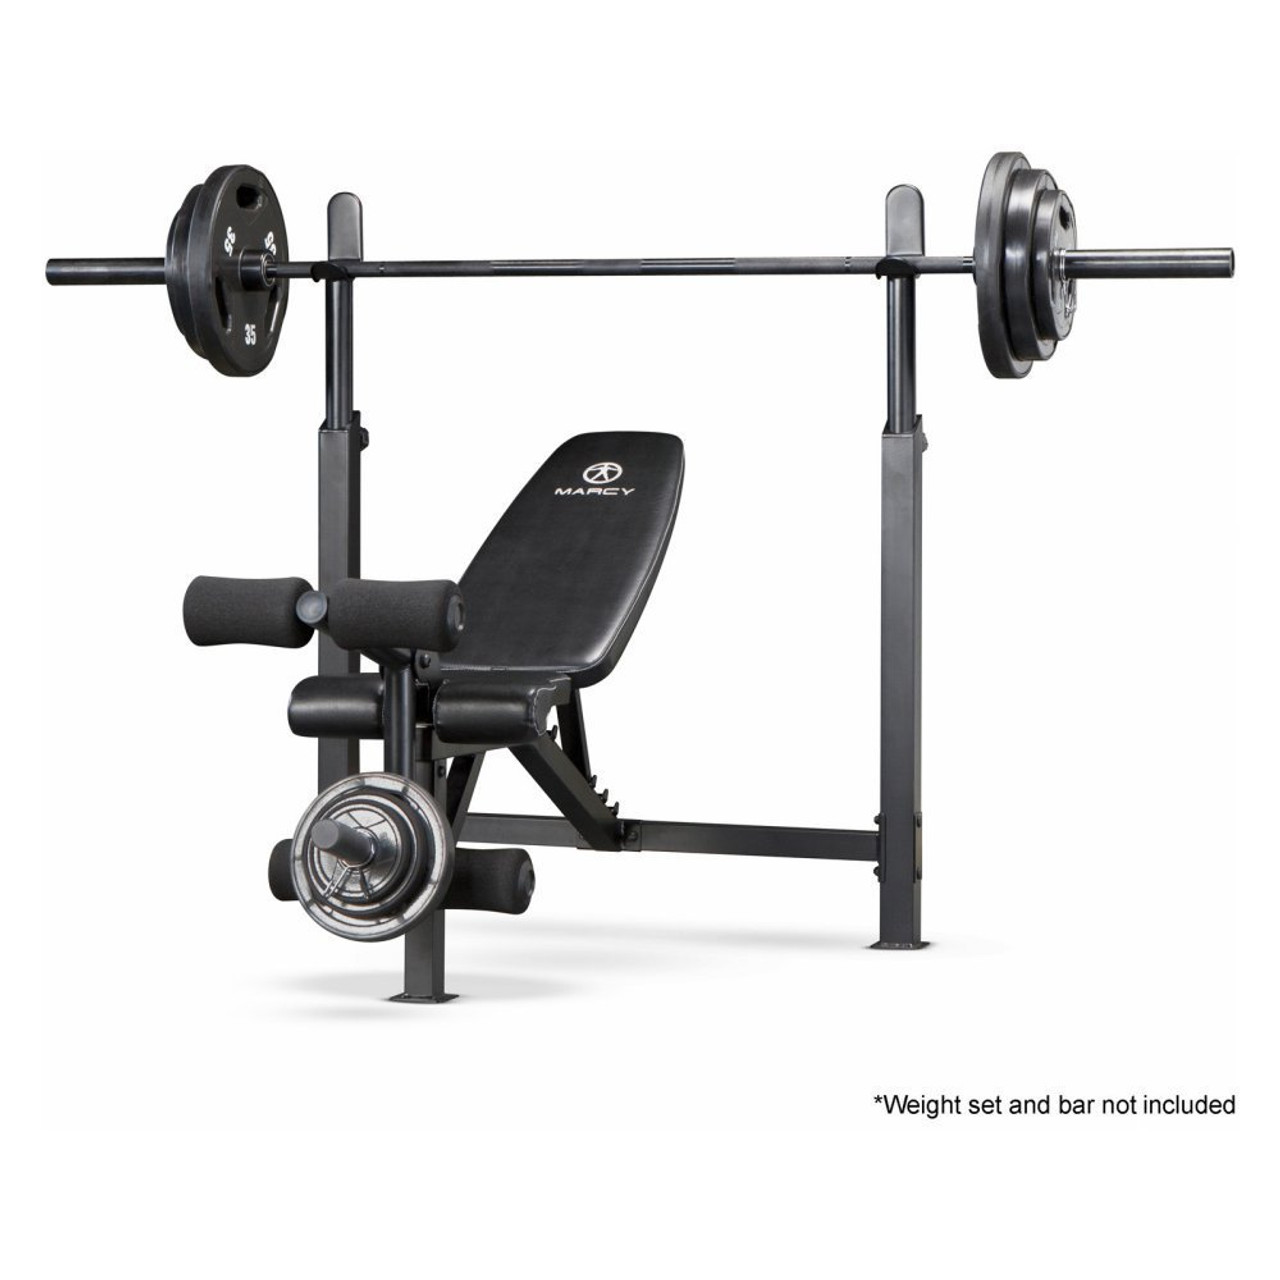 The Marcy Olympic Bench With Rack | MWB 732 By Marcy Adds Variety To Your